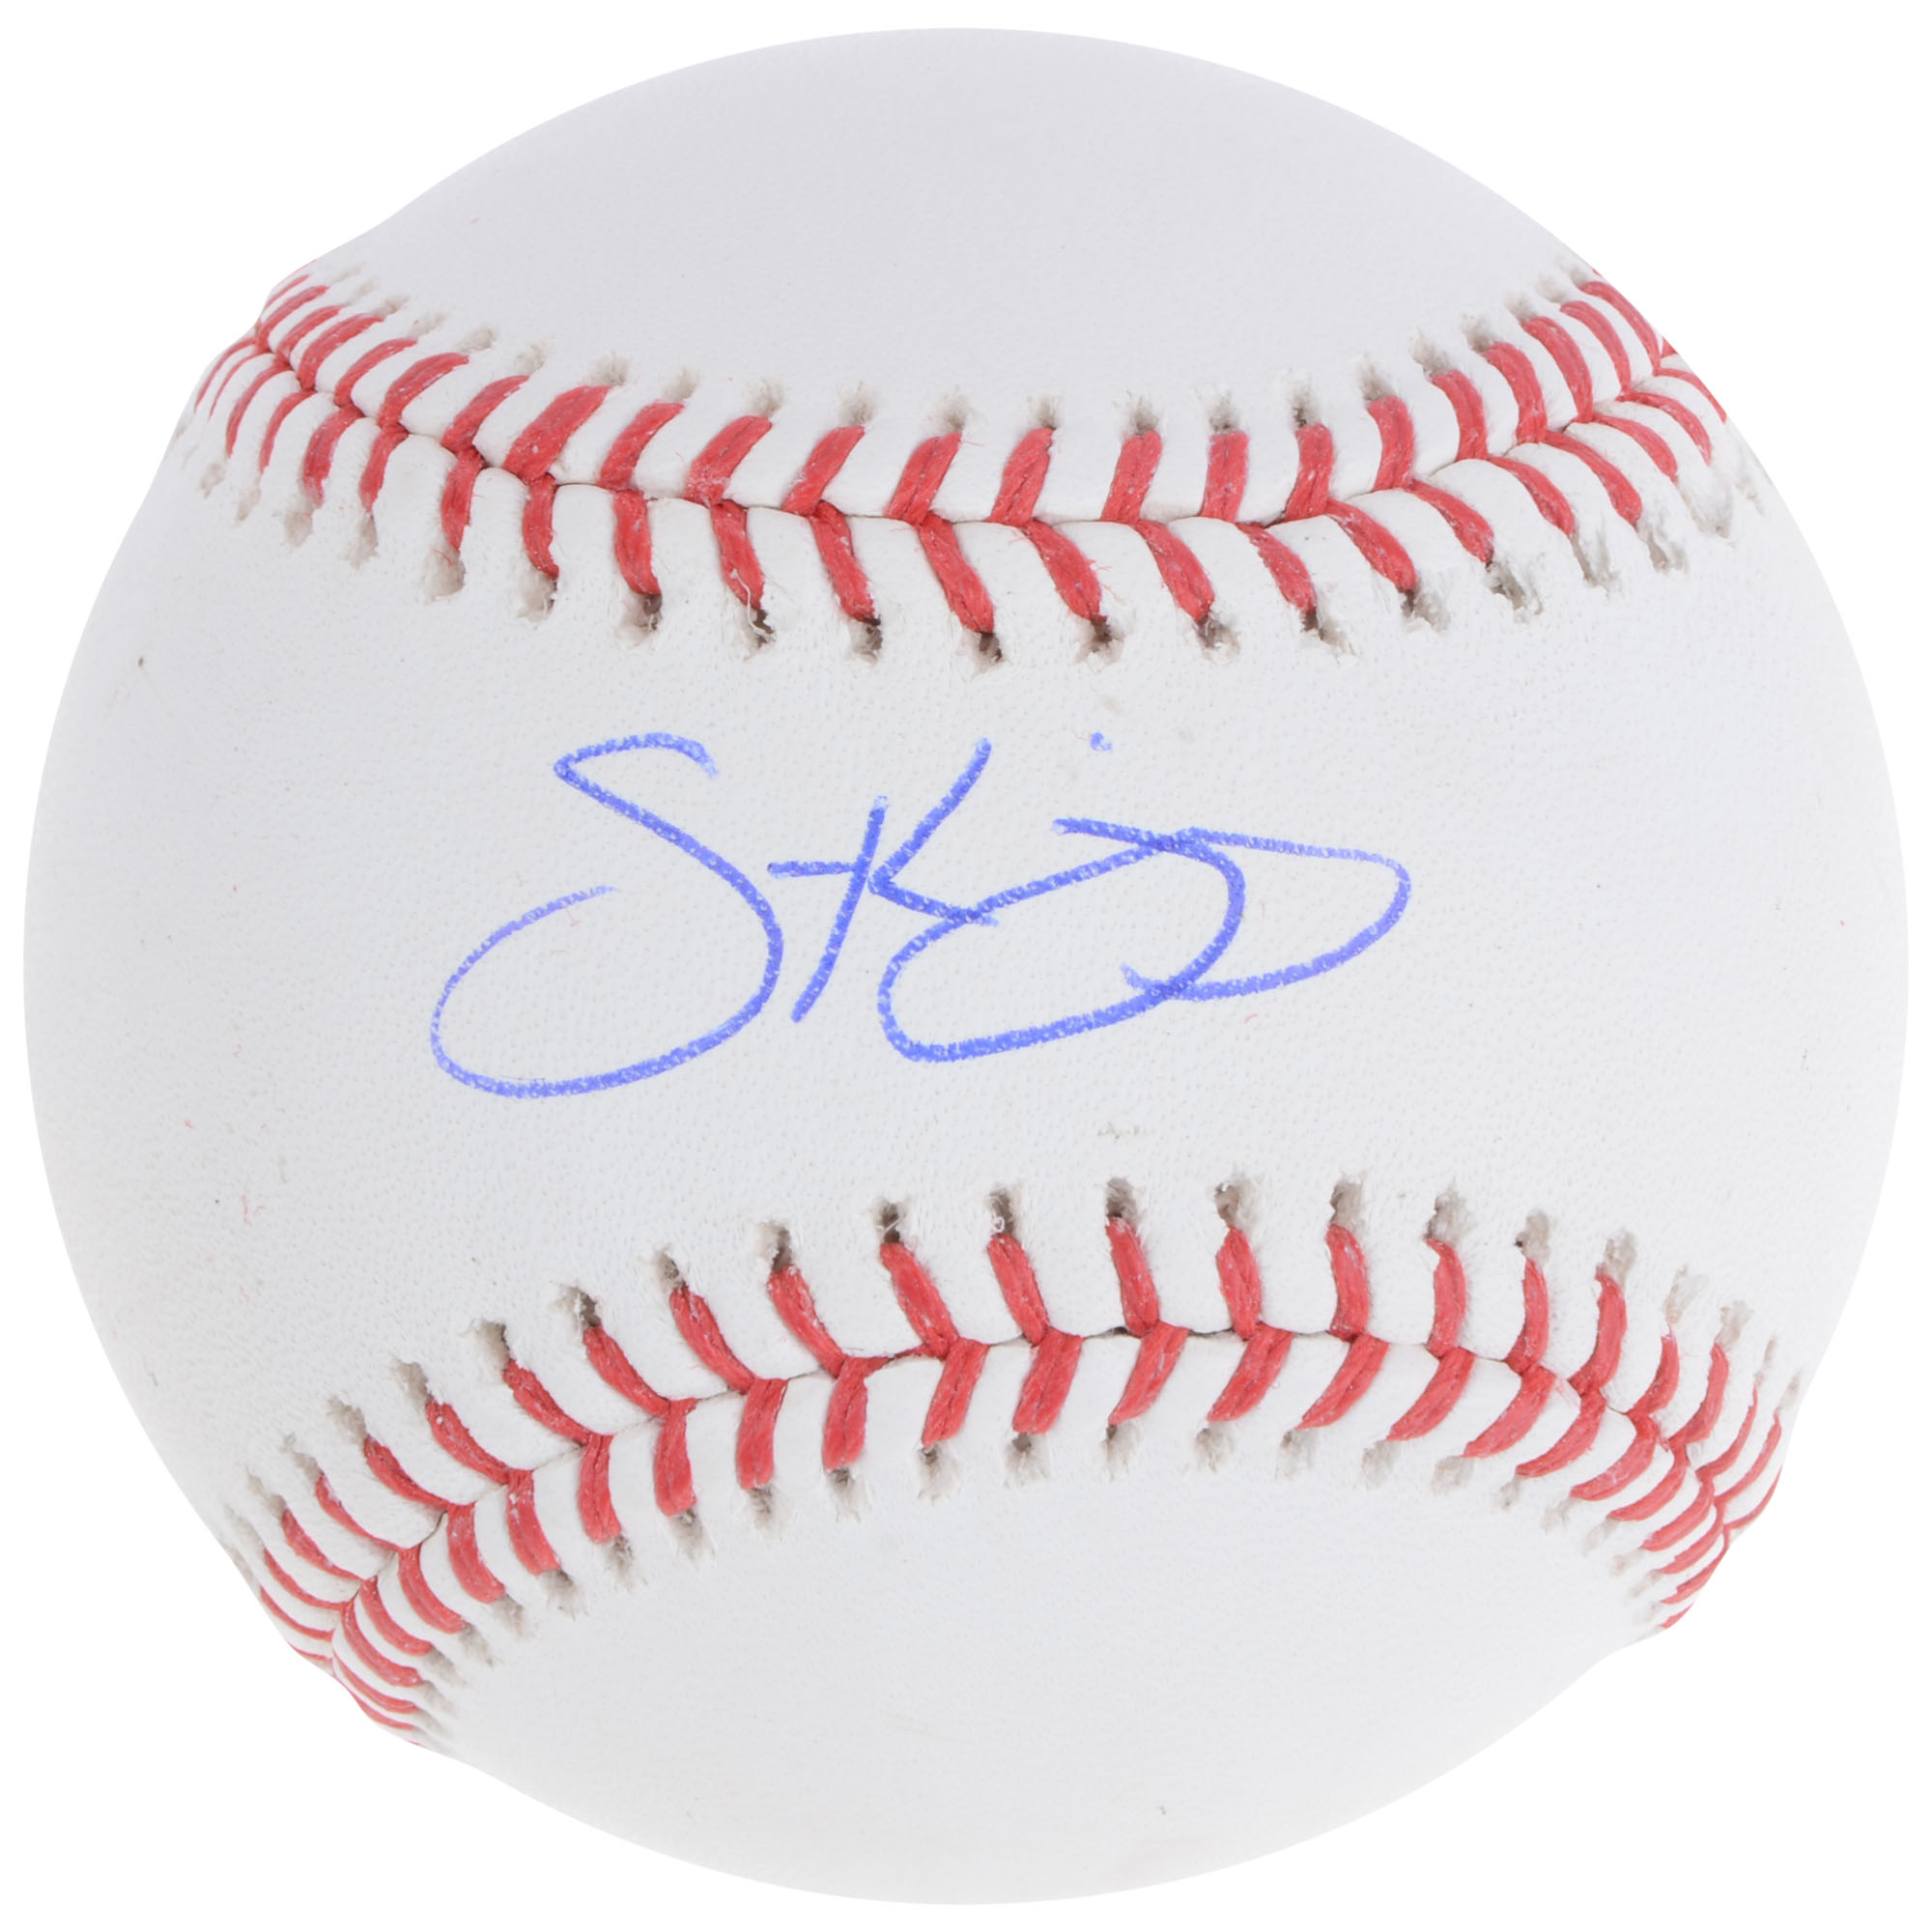 Scott Kingery Philadelphia Phillies Fanatics Authentic Autographed Baseball - No Size